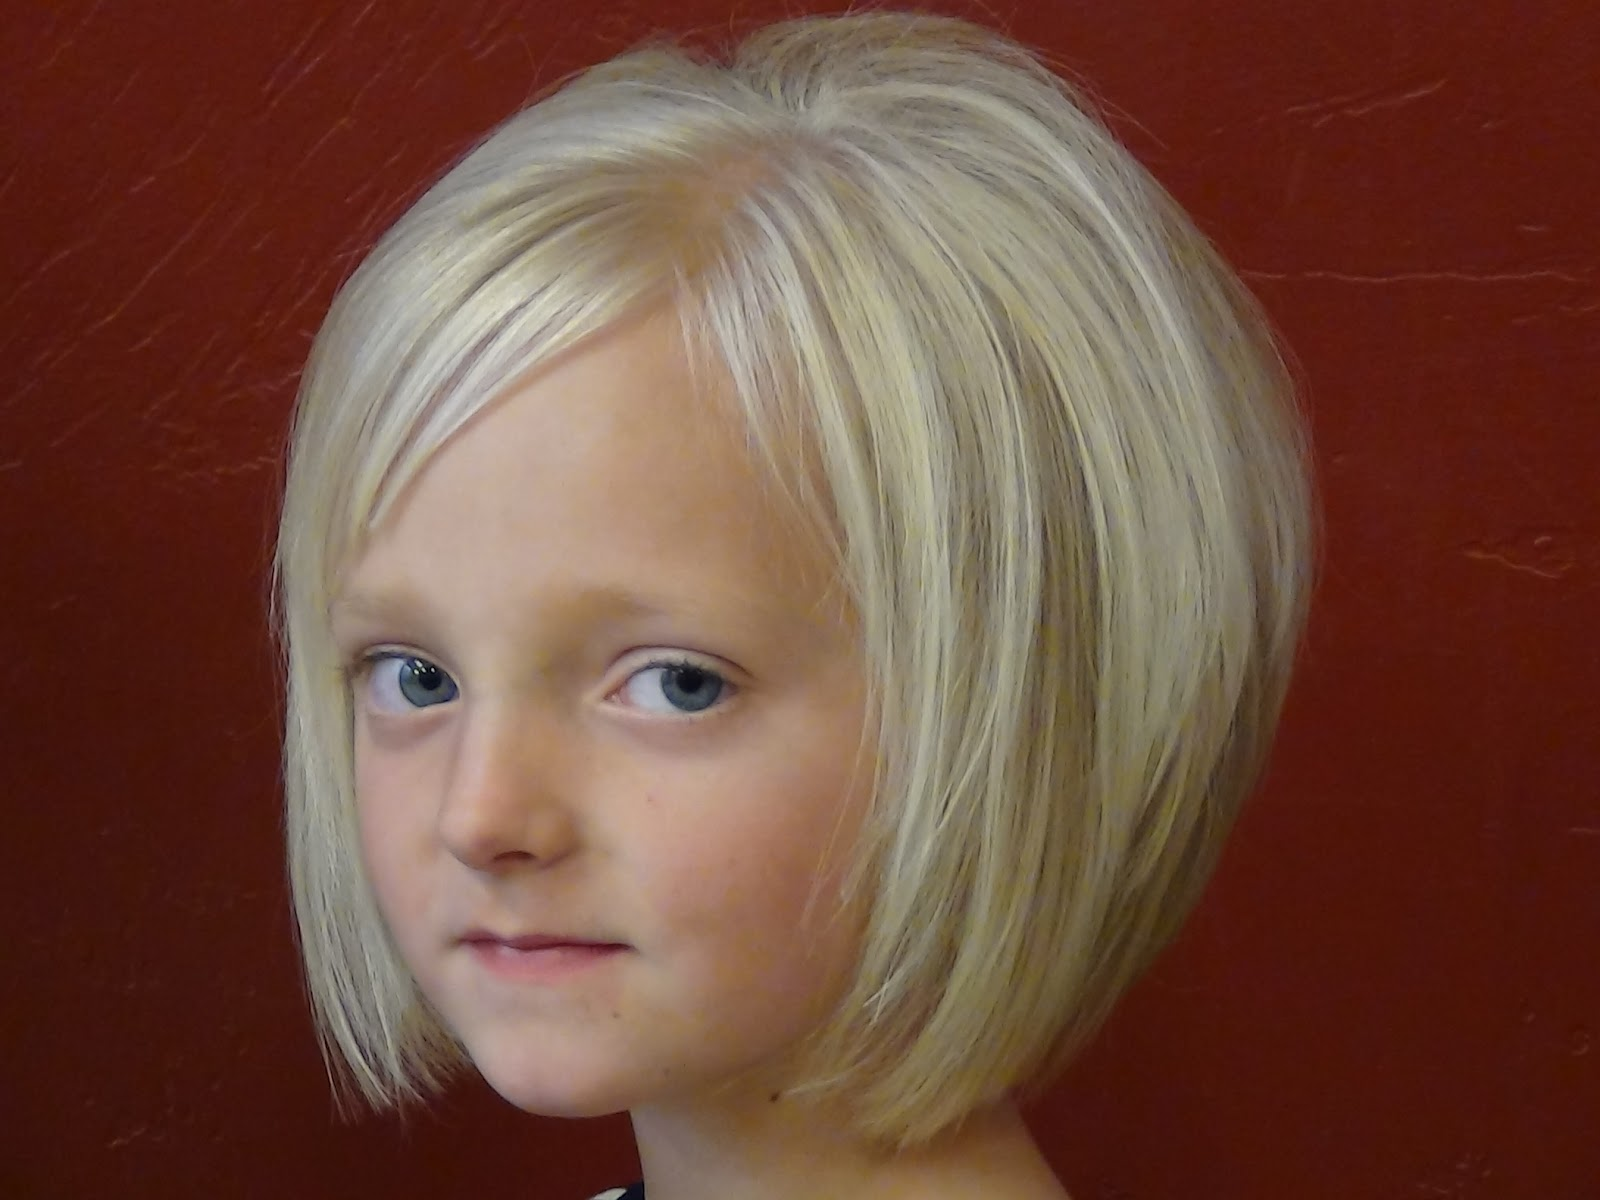 hairstyles for little girls try one of these cute short hairstyles  title=